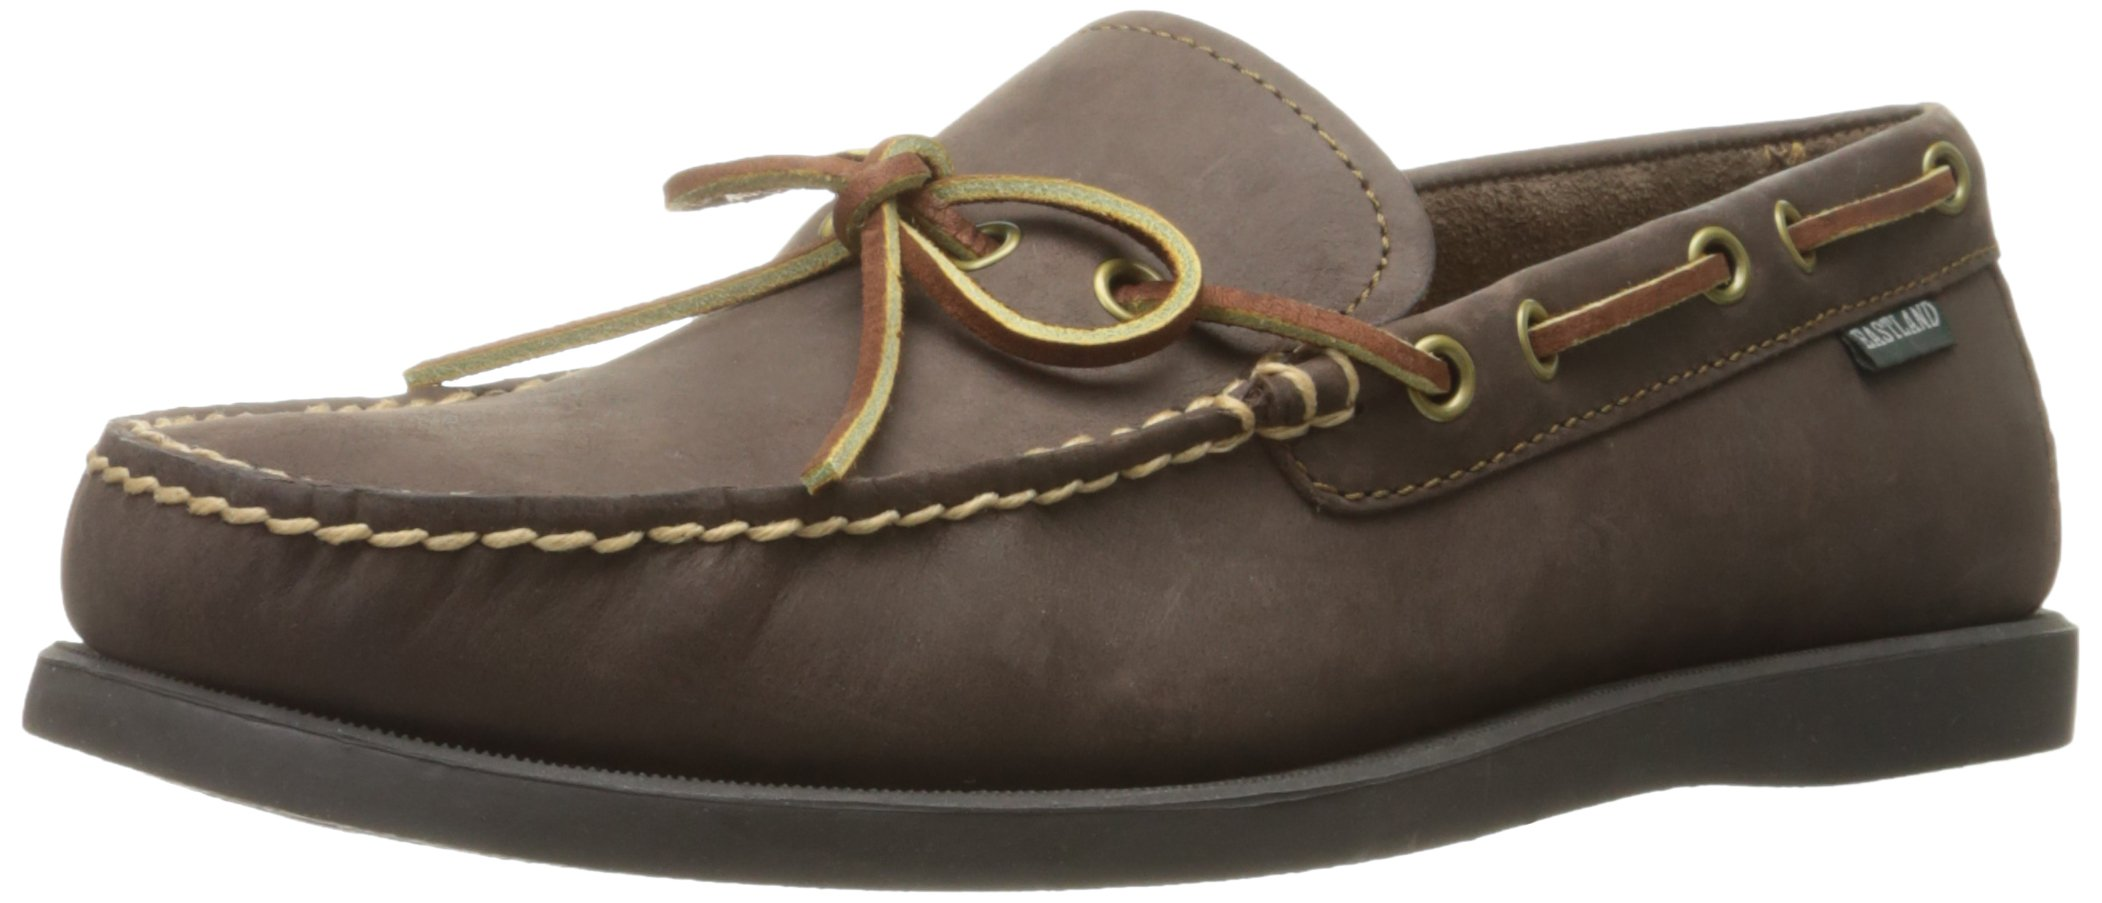 Eastland Men's Yarmouth Slip-on Loafer, Bomber Brown, 10.5 W US